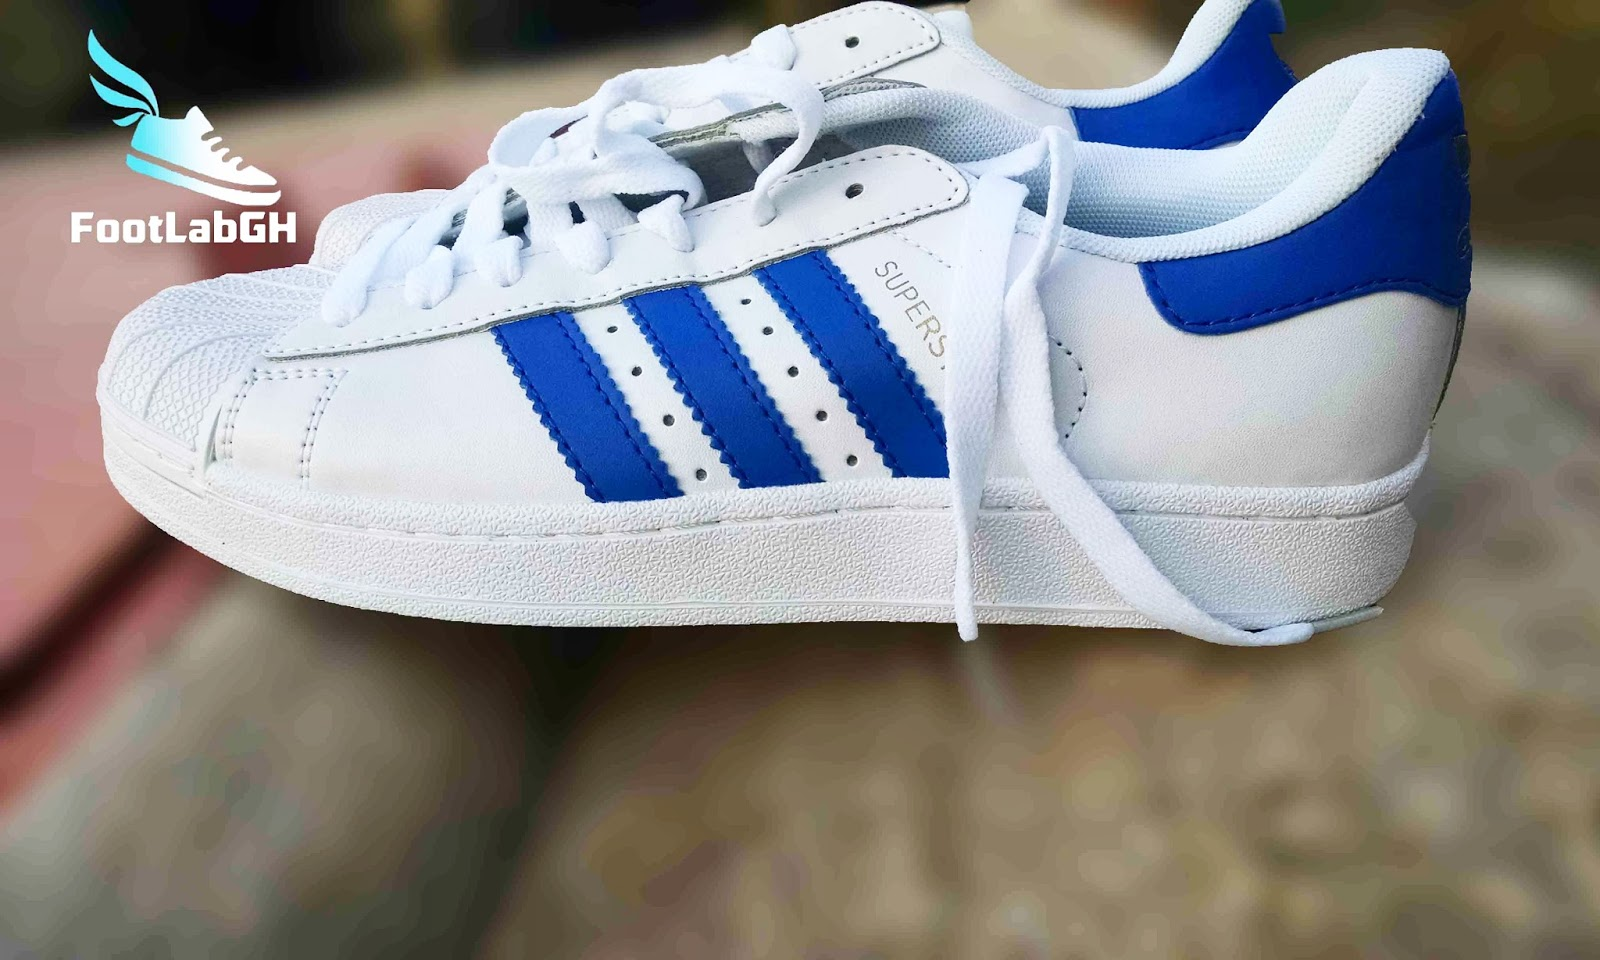 Adidas Superstar ~ official Footlab GH